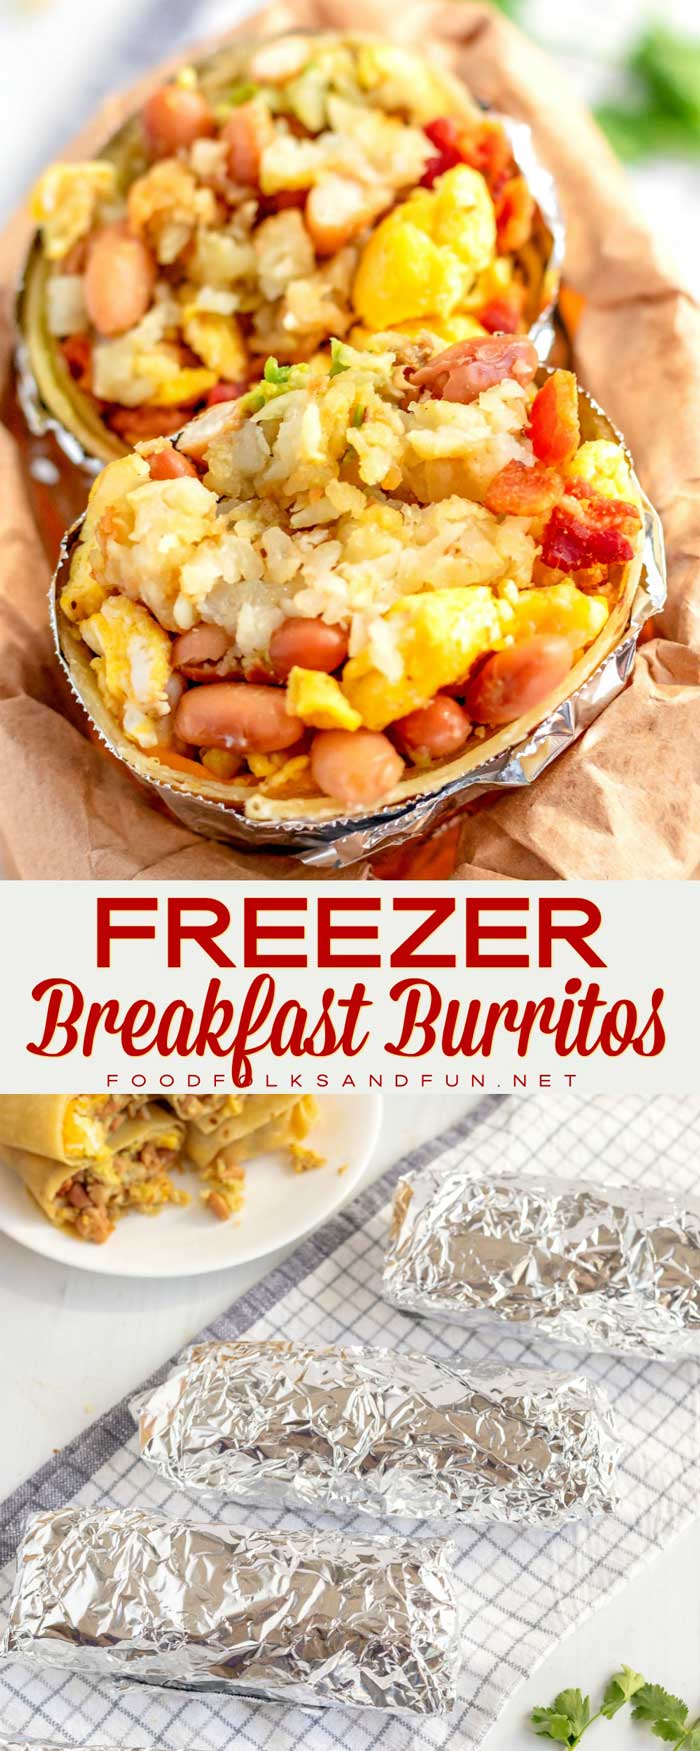 These freezer Breakfast Burritos are massive and stuffed with eggs, cheese, bacon, crispy potatoes, guacamole, and my secret ingredient that makes them incredible! #breakfast #bacon #breakfastburritos #burrito #comfortfood #FreezerMeal #FreezerBreakfast #foodfolksandfun via @foodfolksandfun